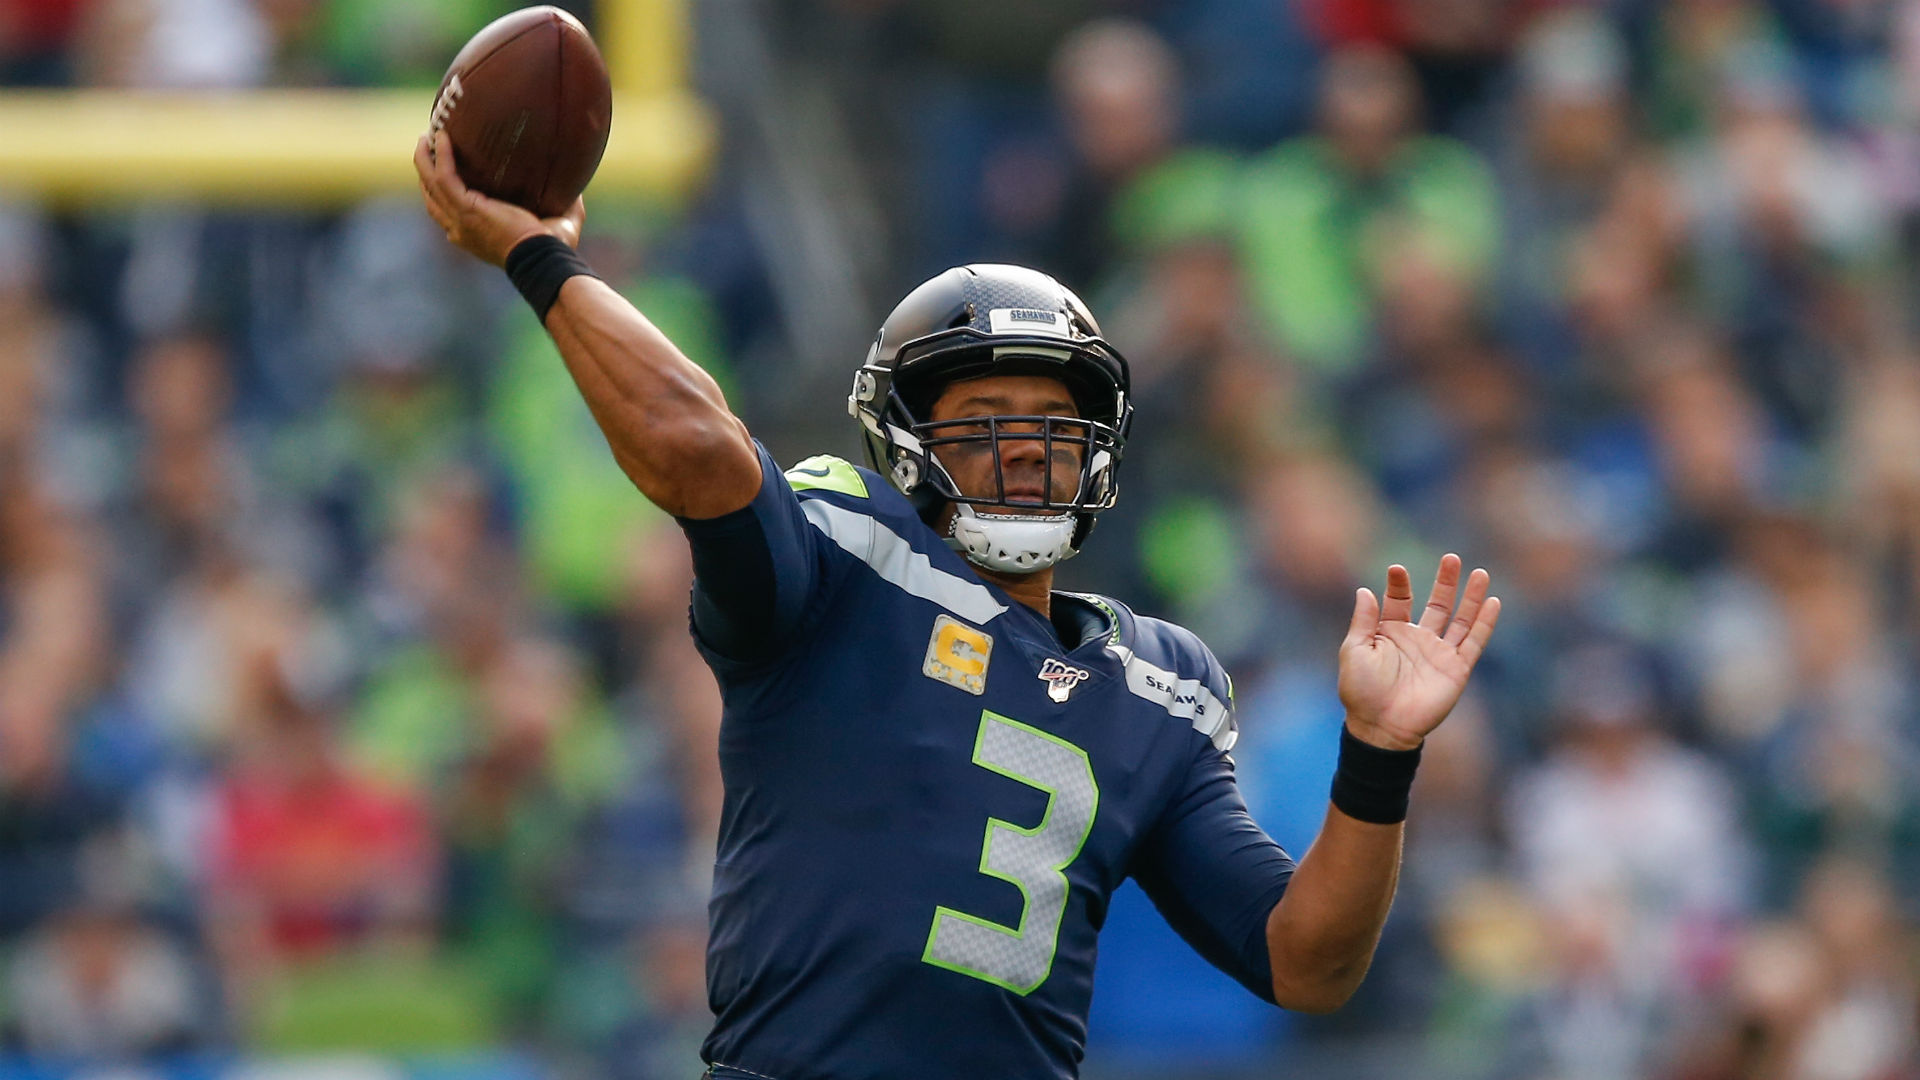 NFL scores Week 9: Final results, highlights from Sunday's games